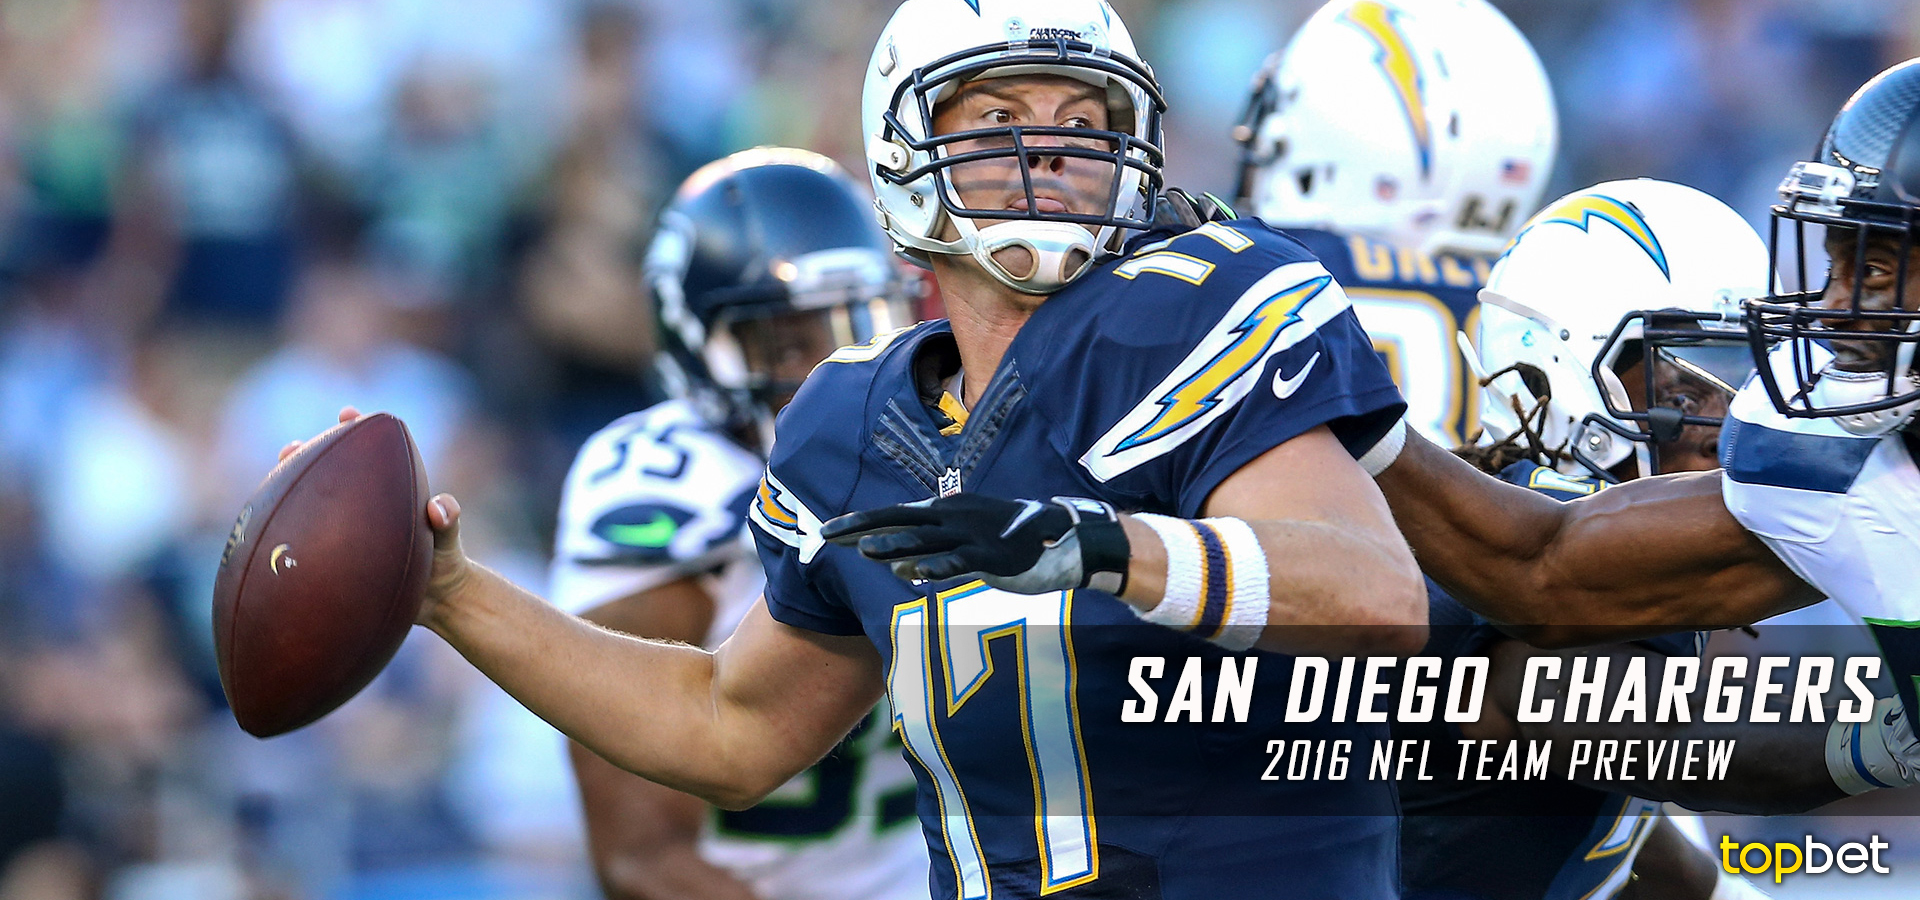 San Diego Chargers 2016 17 Team Preview Odds